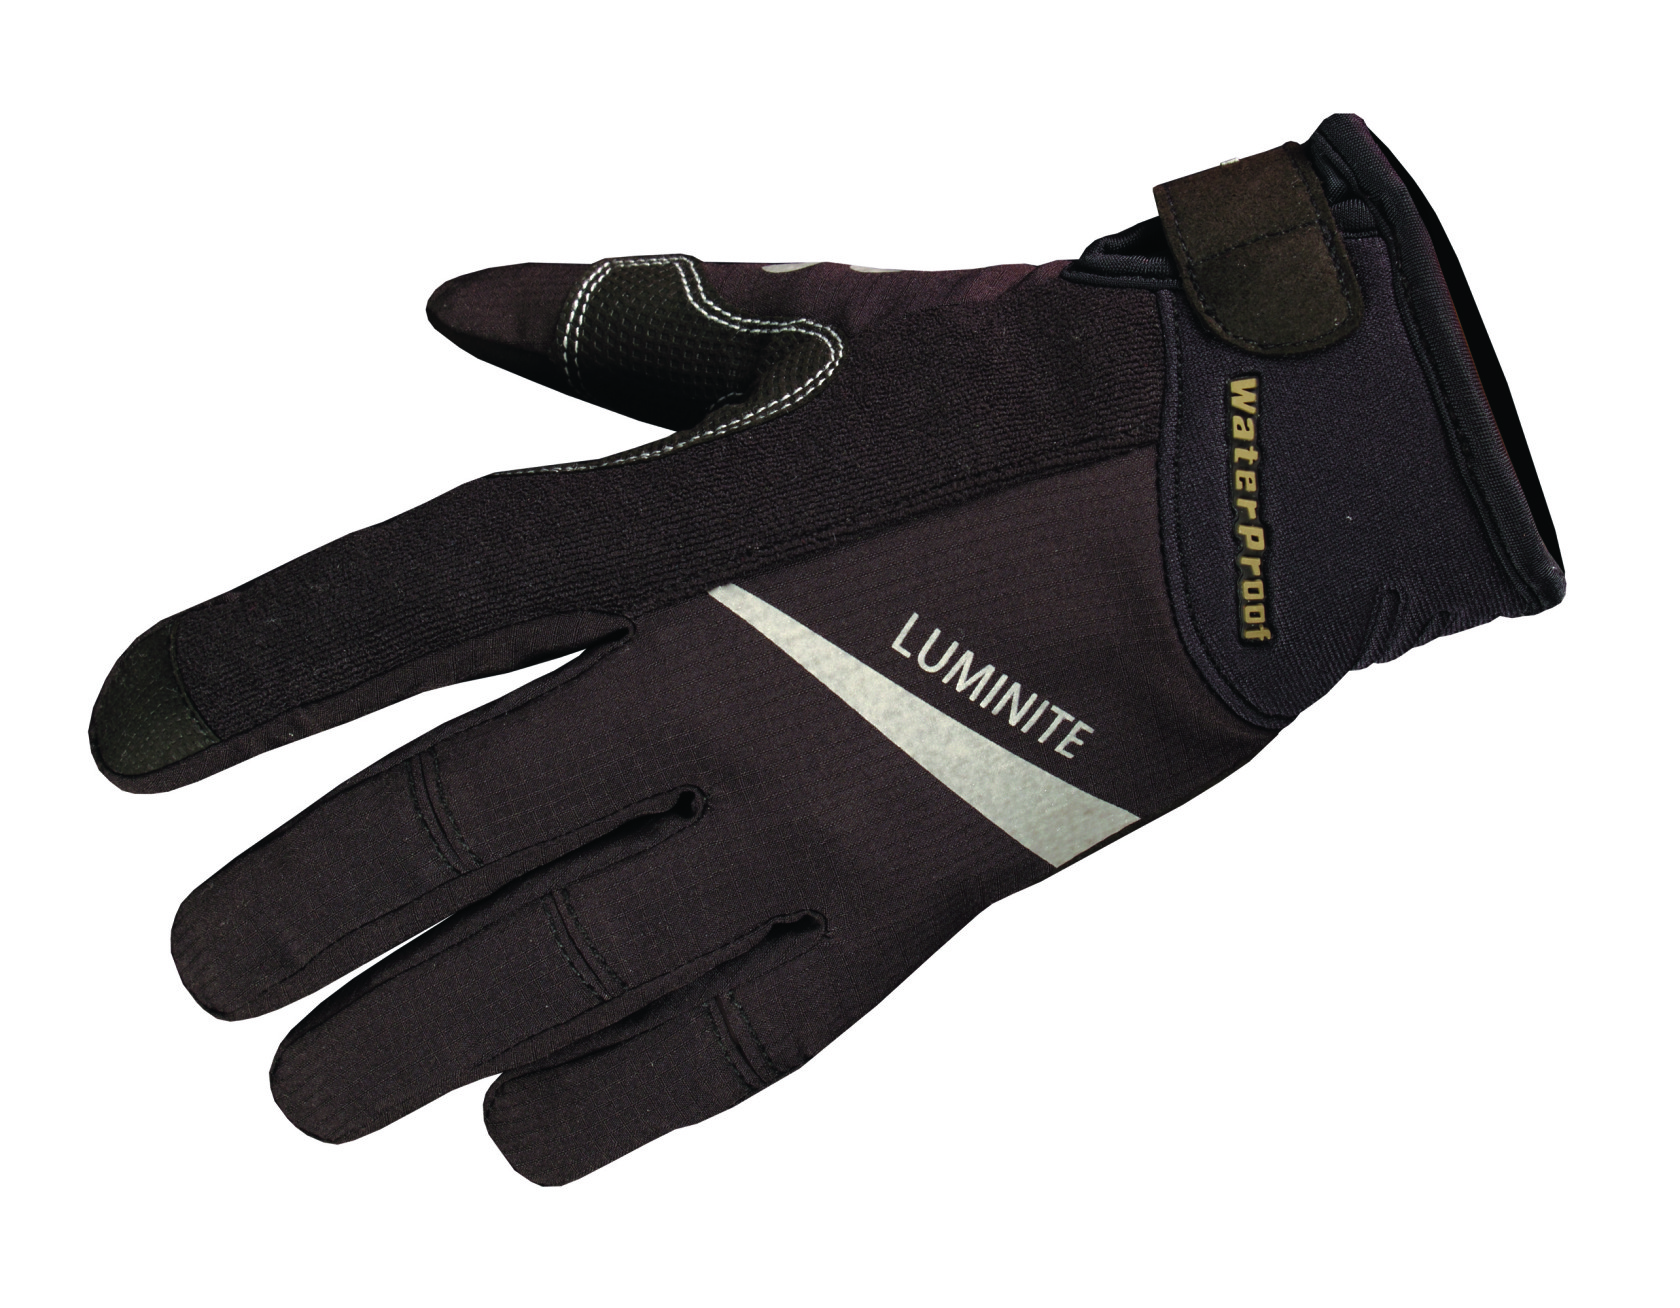 Endura Luminite Gloves Review